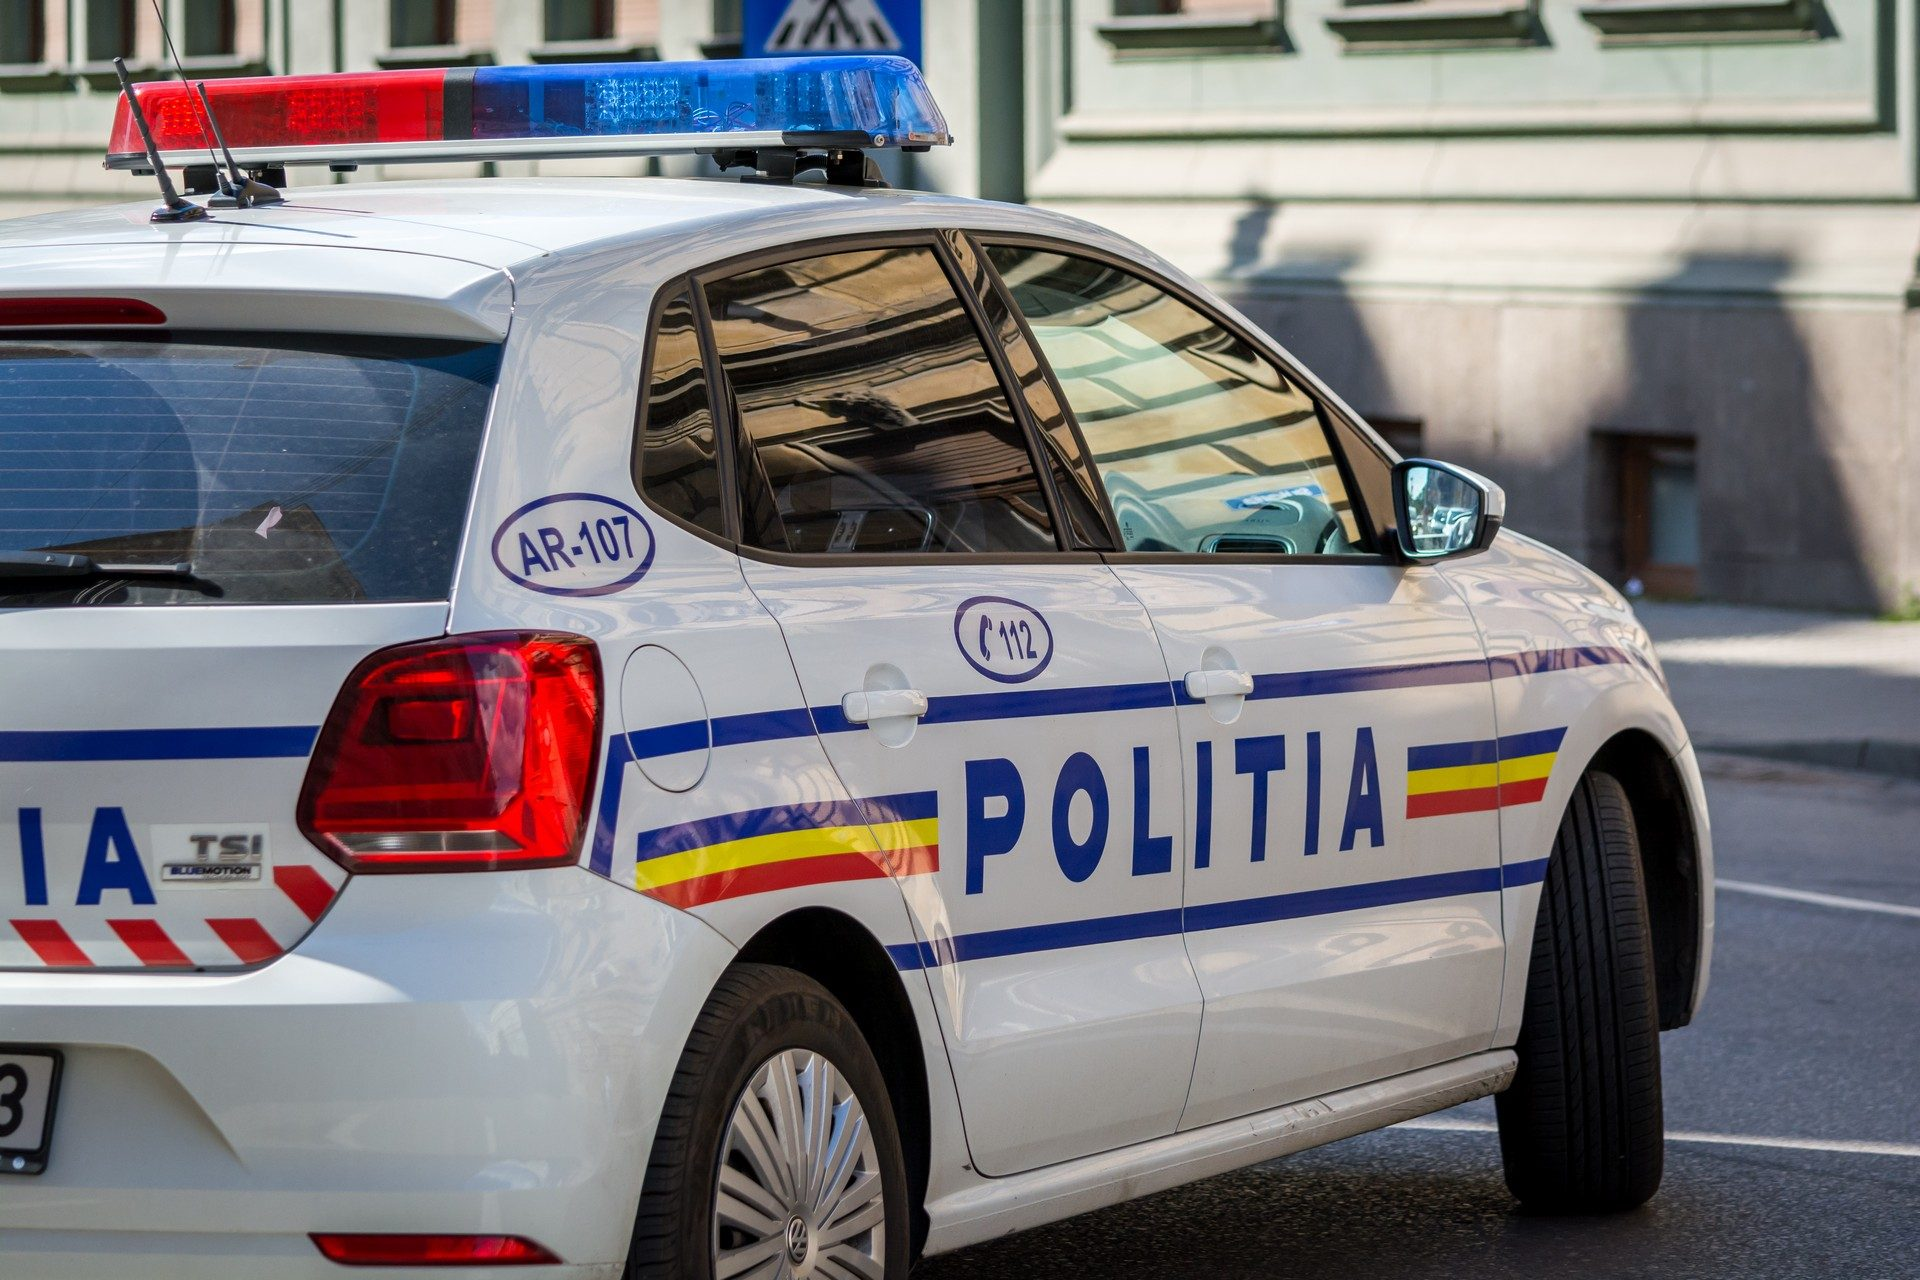 Masina de politie arad accidentelive vw polo.